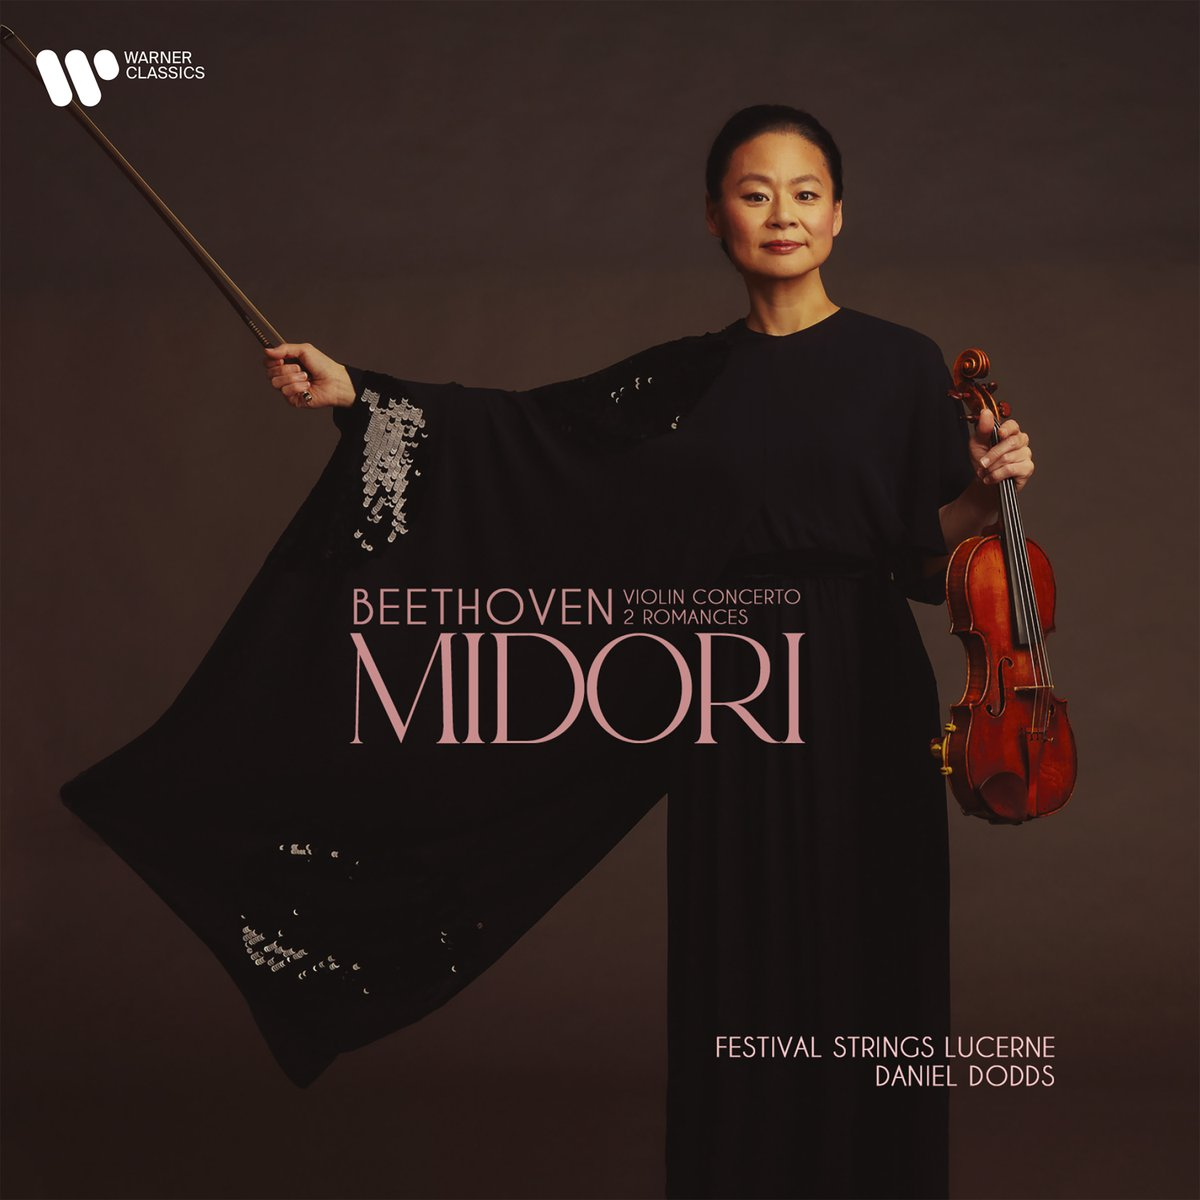 """""""Beethoven's determination still provides a model for humankind,"""" says violinist Midori. She has recorded his Violin Concerto and two Romances for her next album, with the Lucerne Festival Strings. Listen to a new single: https://t.co/qF4pdCKWVX  #Beethoven2020 https://t.co/EVfQLeRJke"""